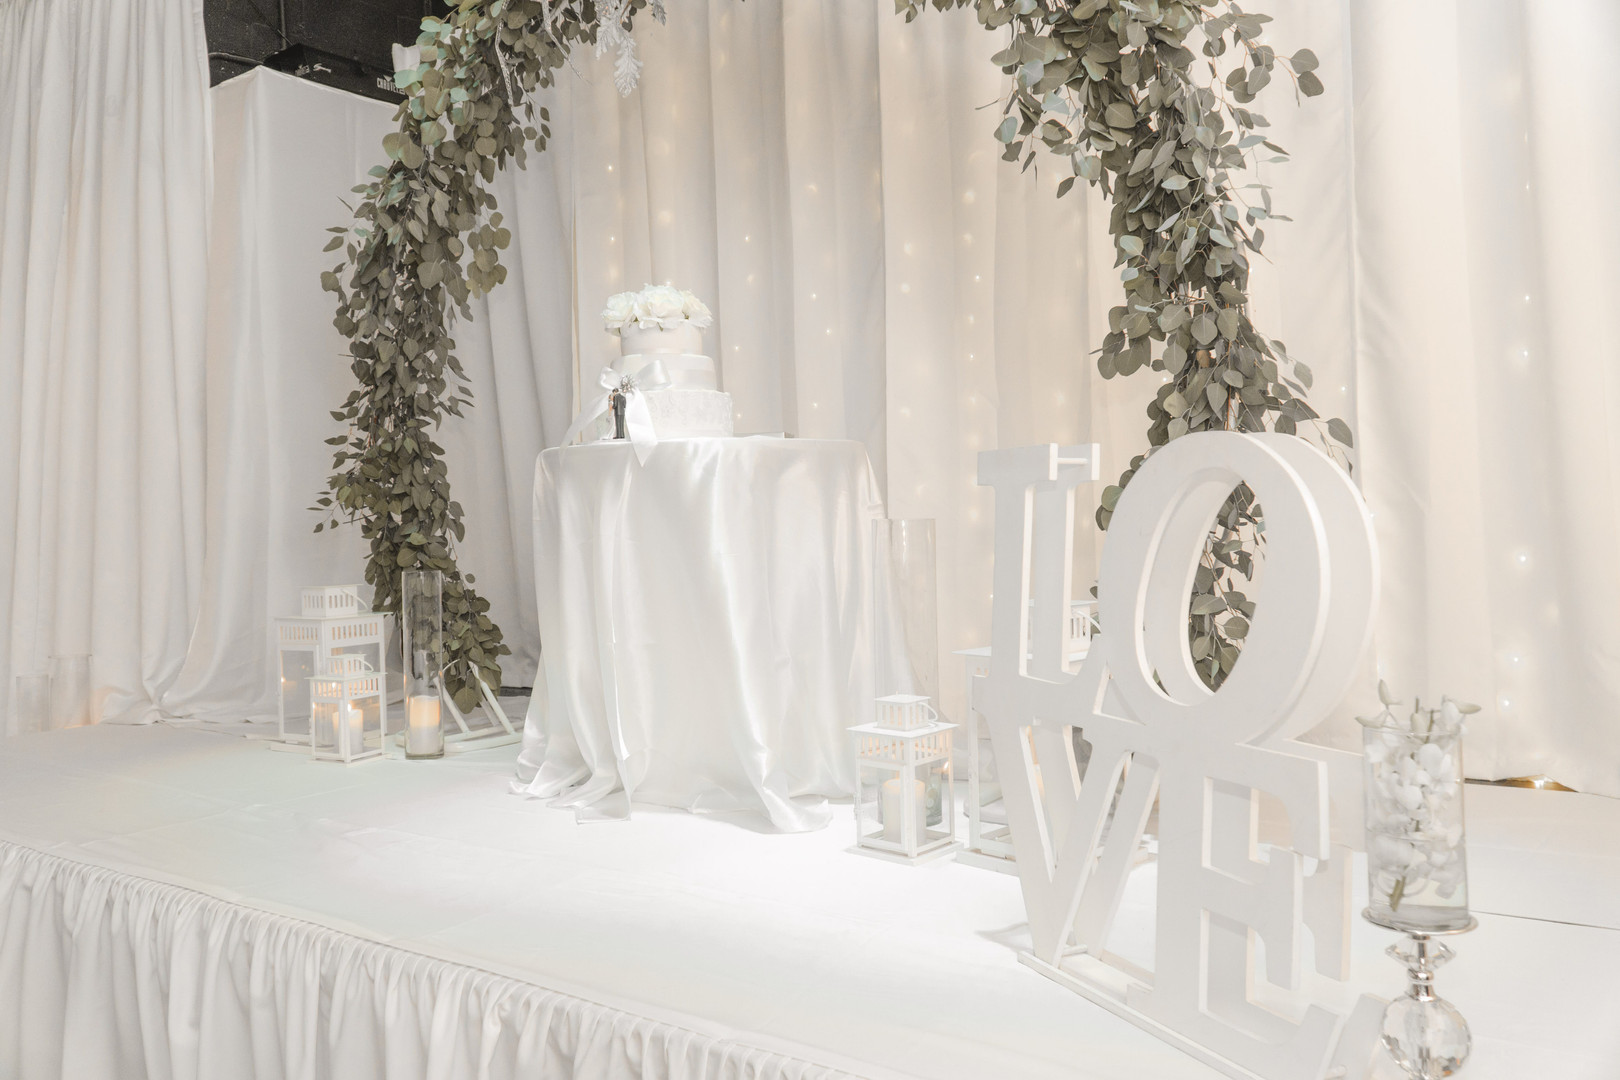 Wedding venue with a love sign in Kendall Miami